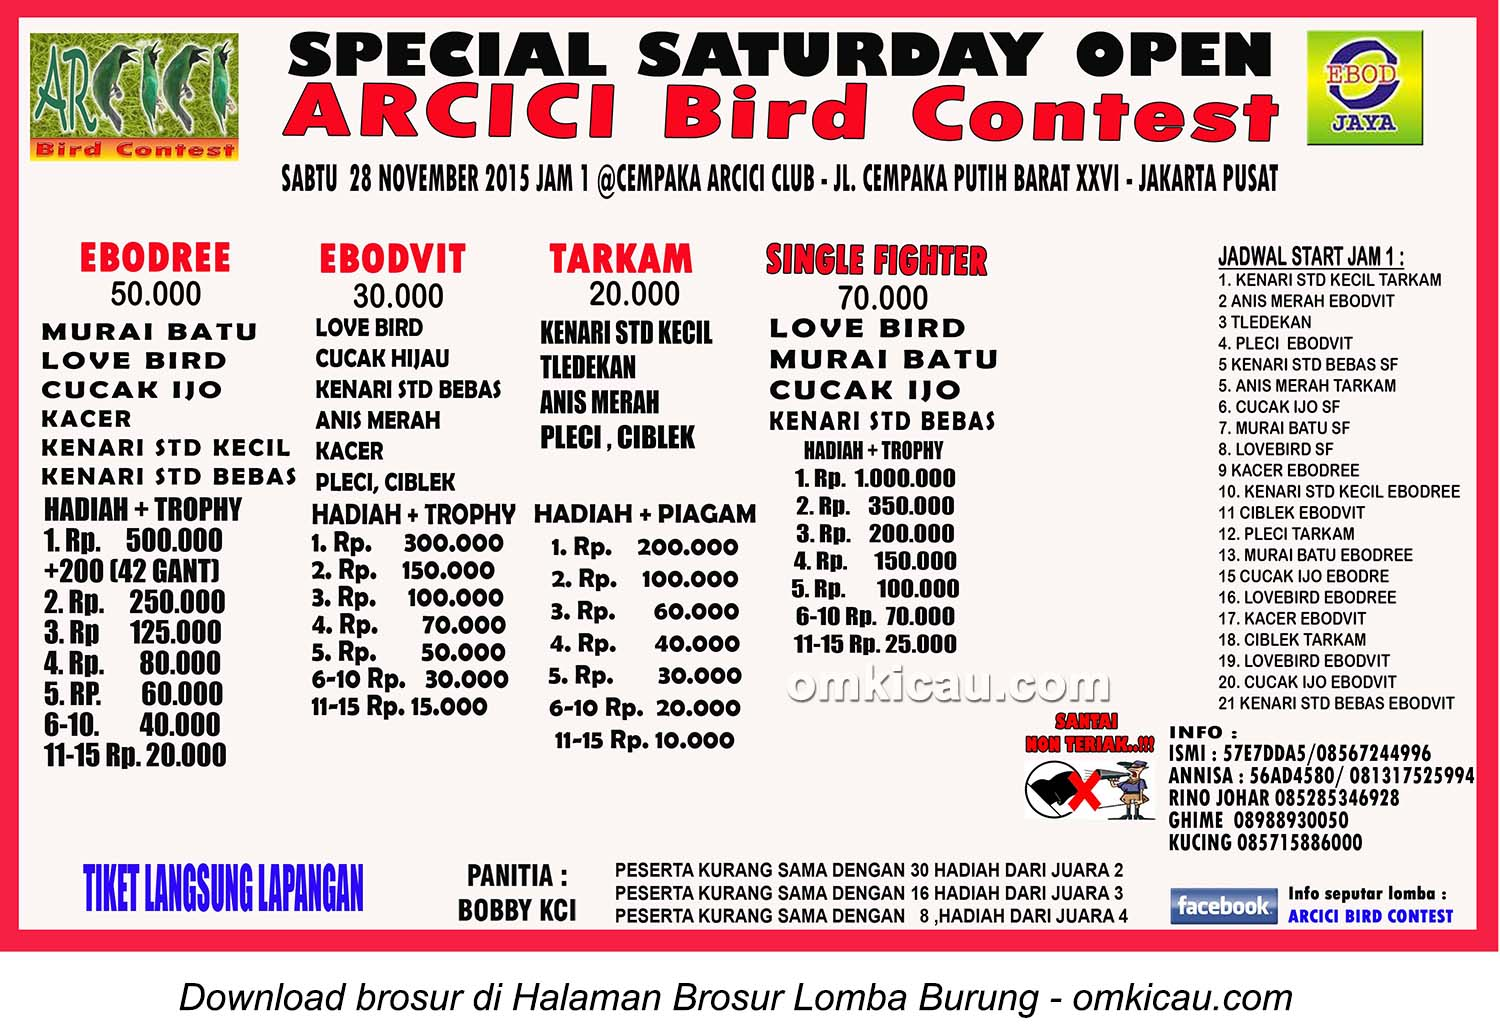 Brosur Special Saturday Open Arcici Bird Contest, Jakarta, 28 November 2015